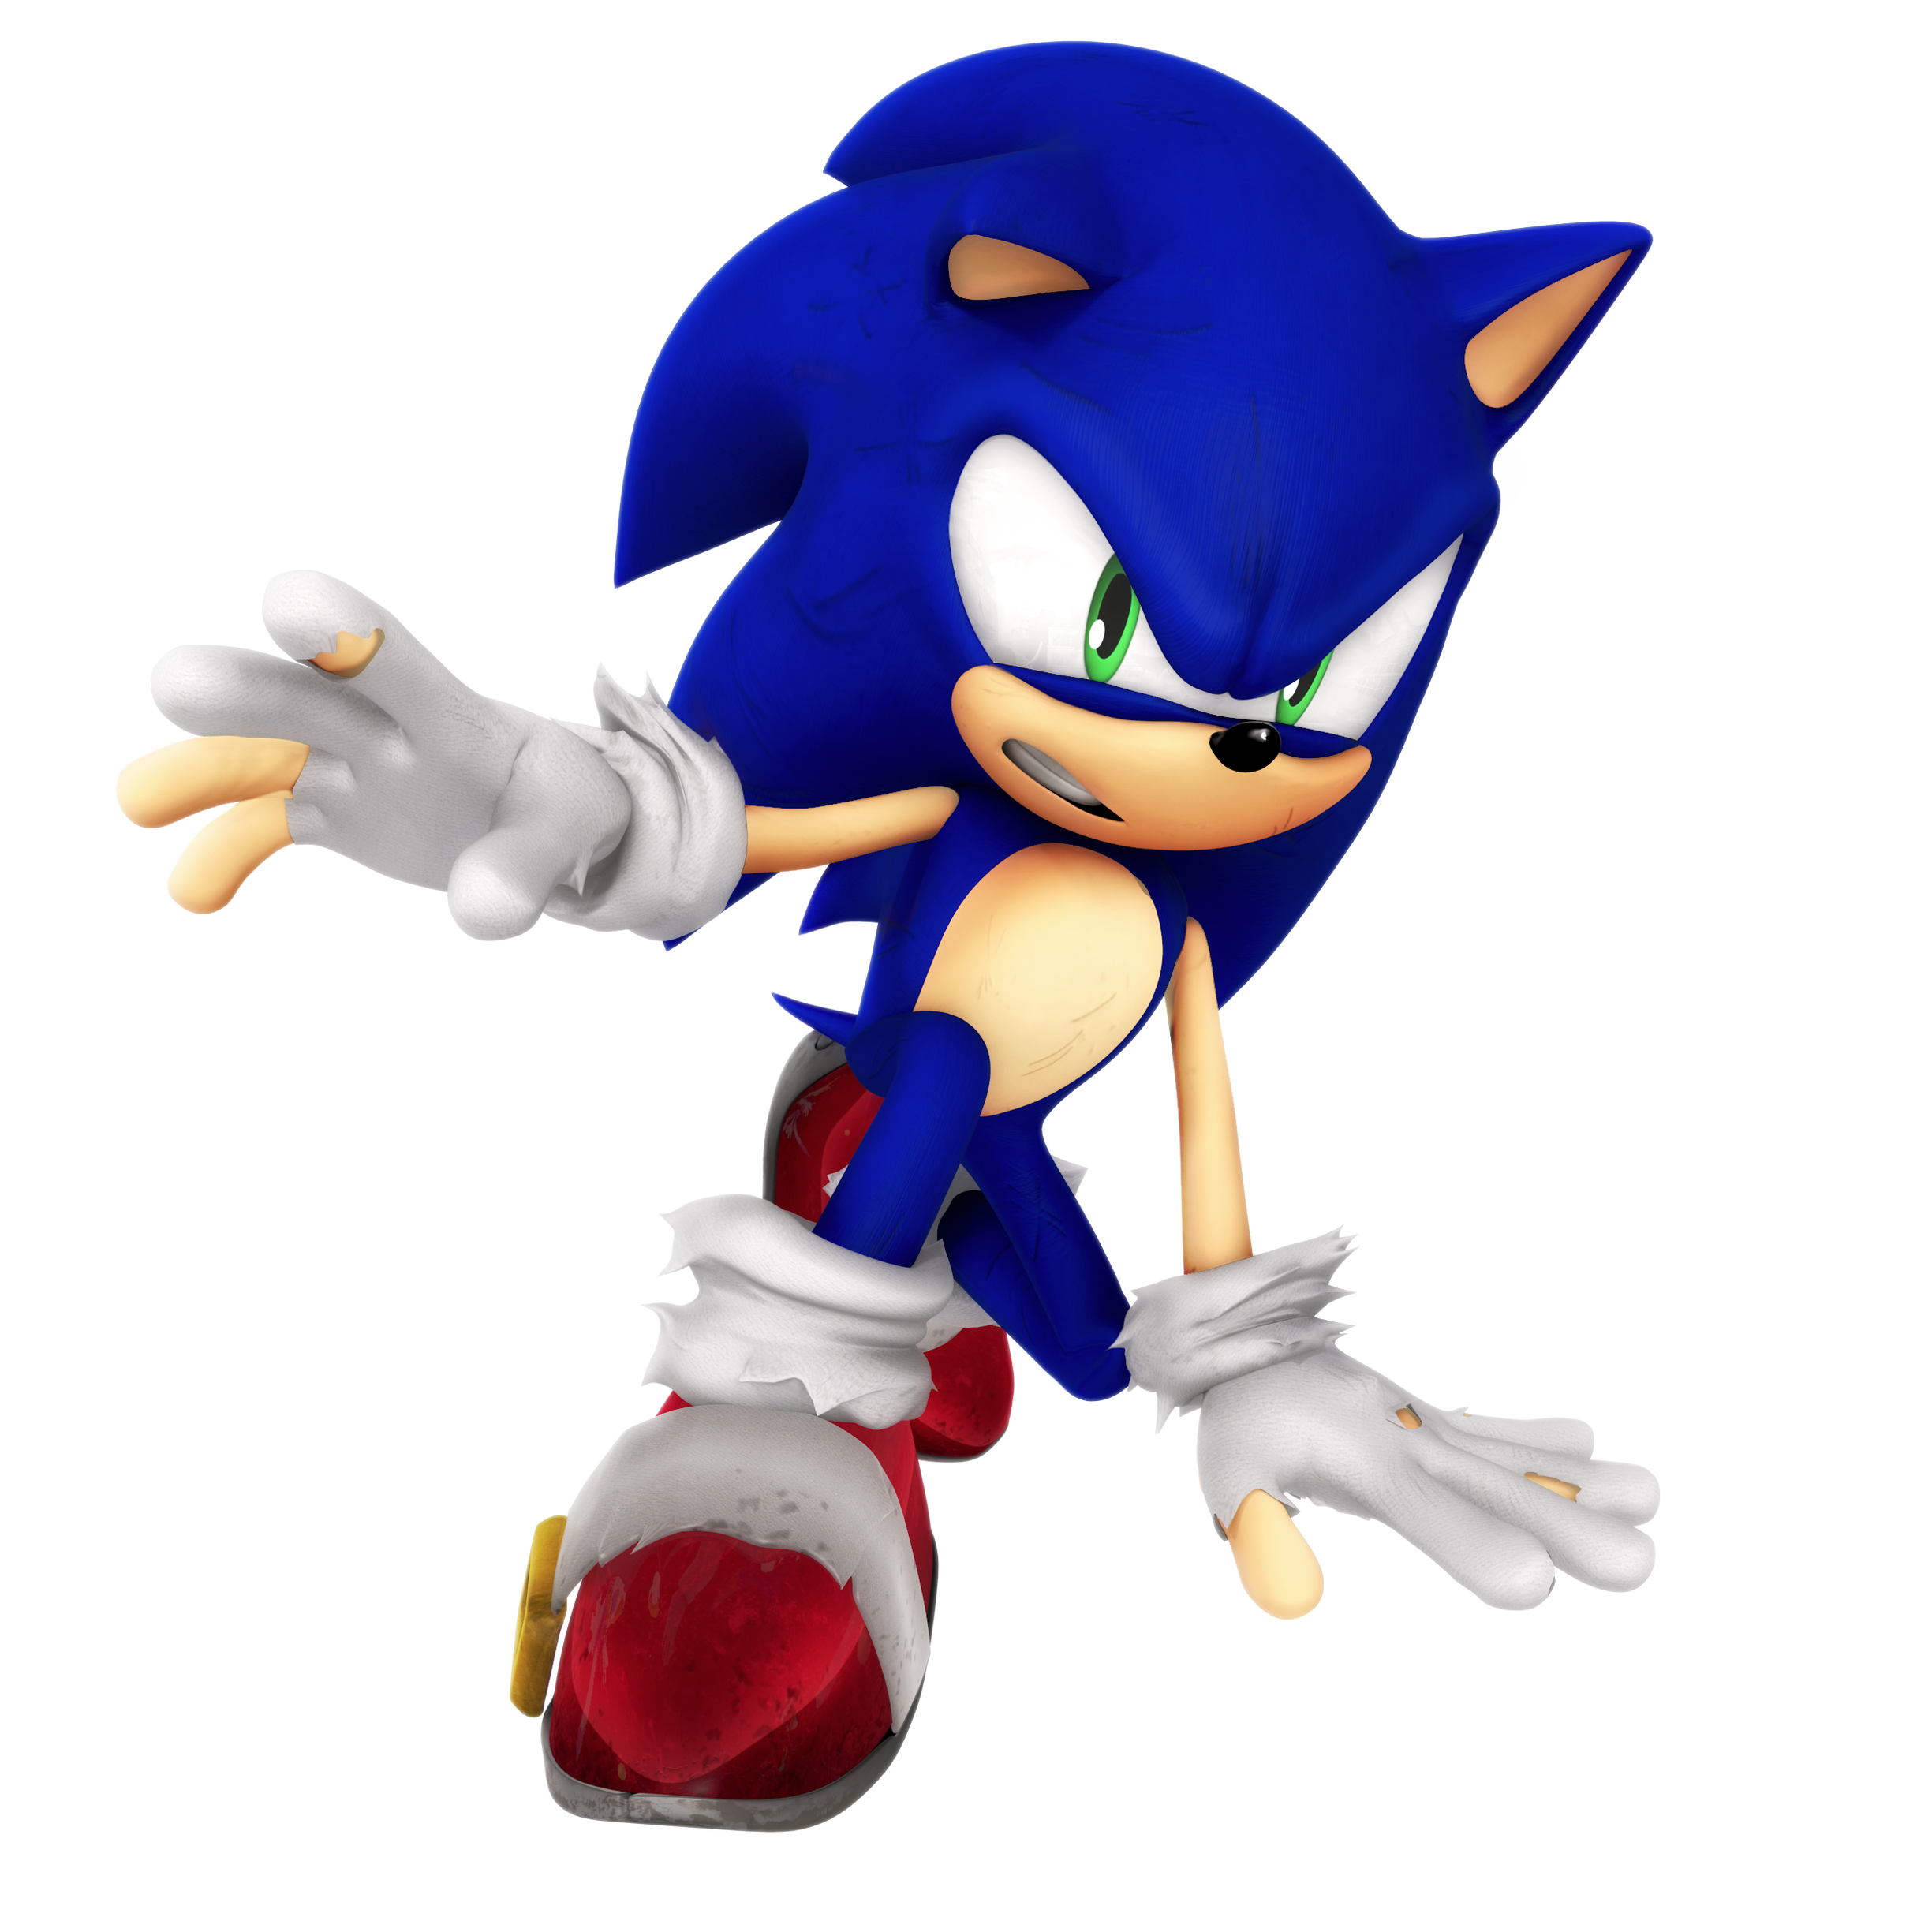 Sad sonic png. Battle damage render by